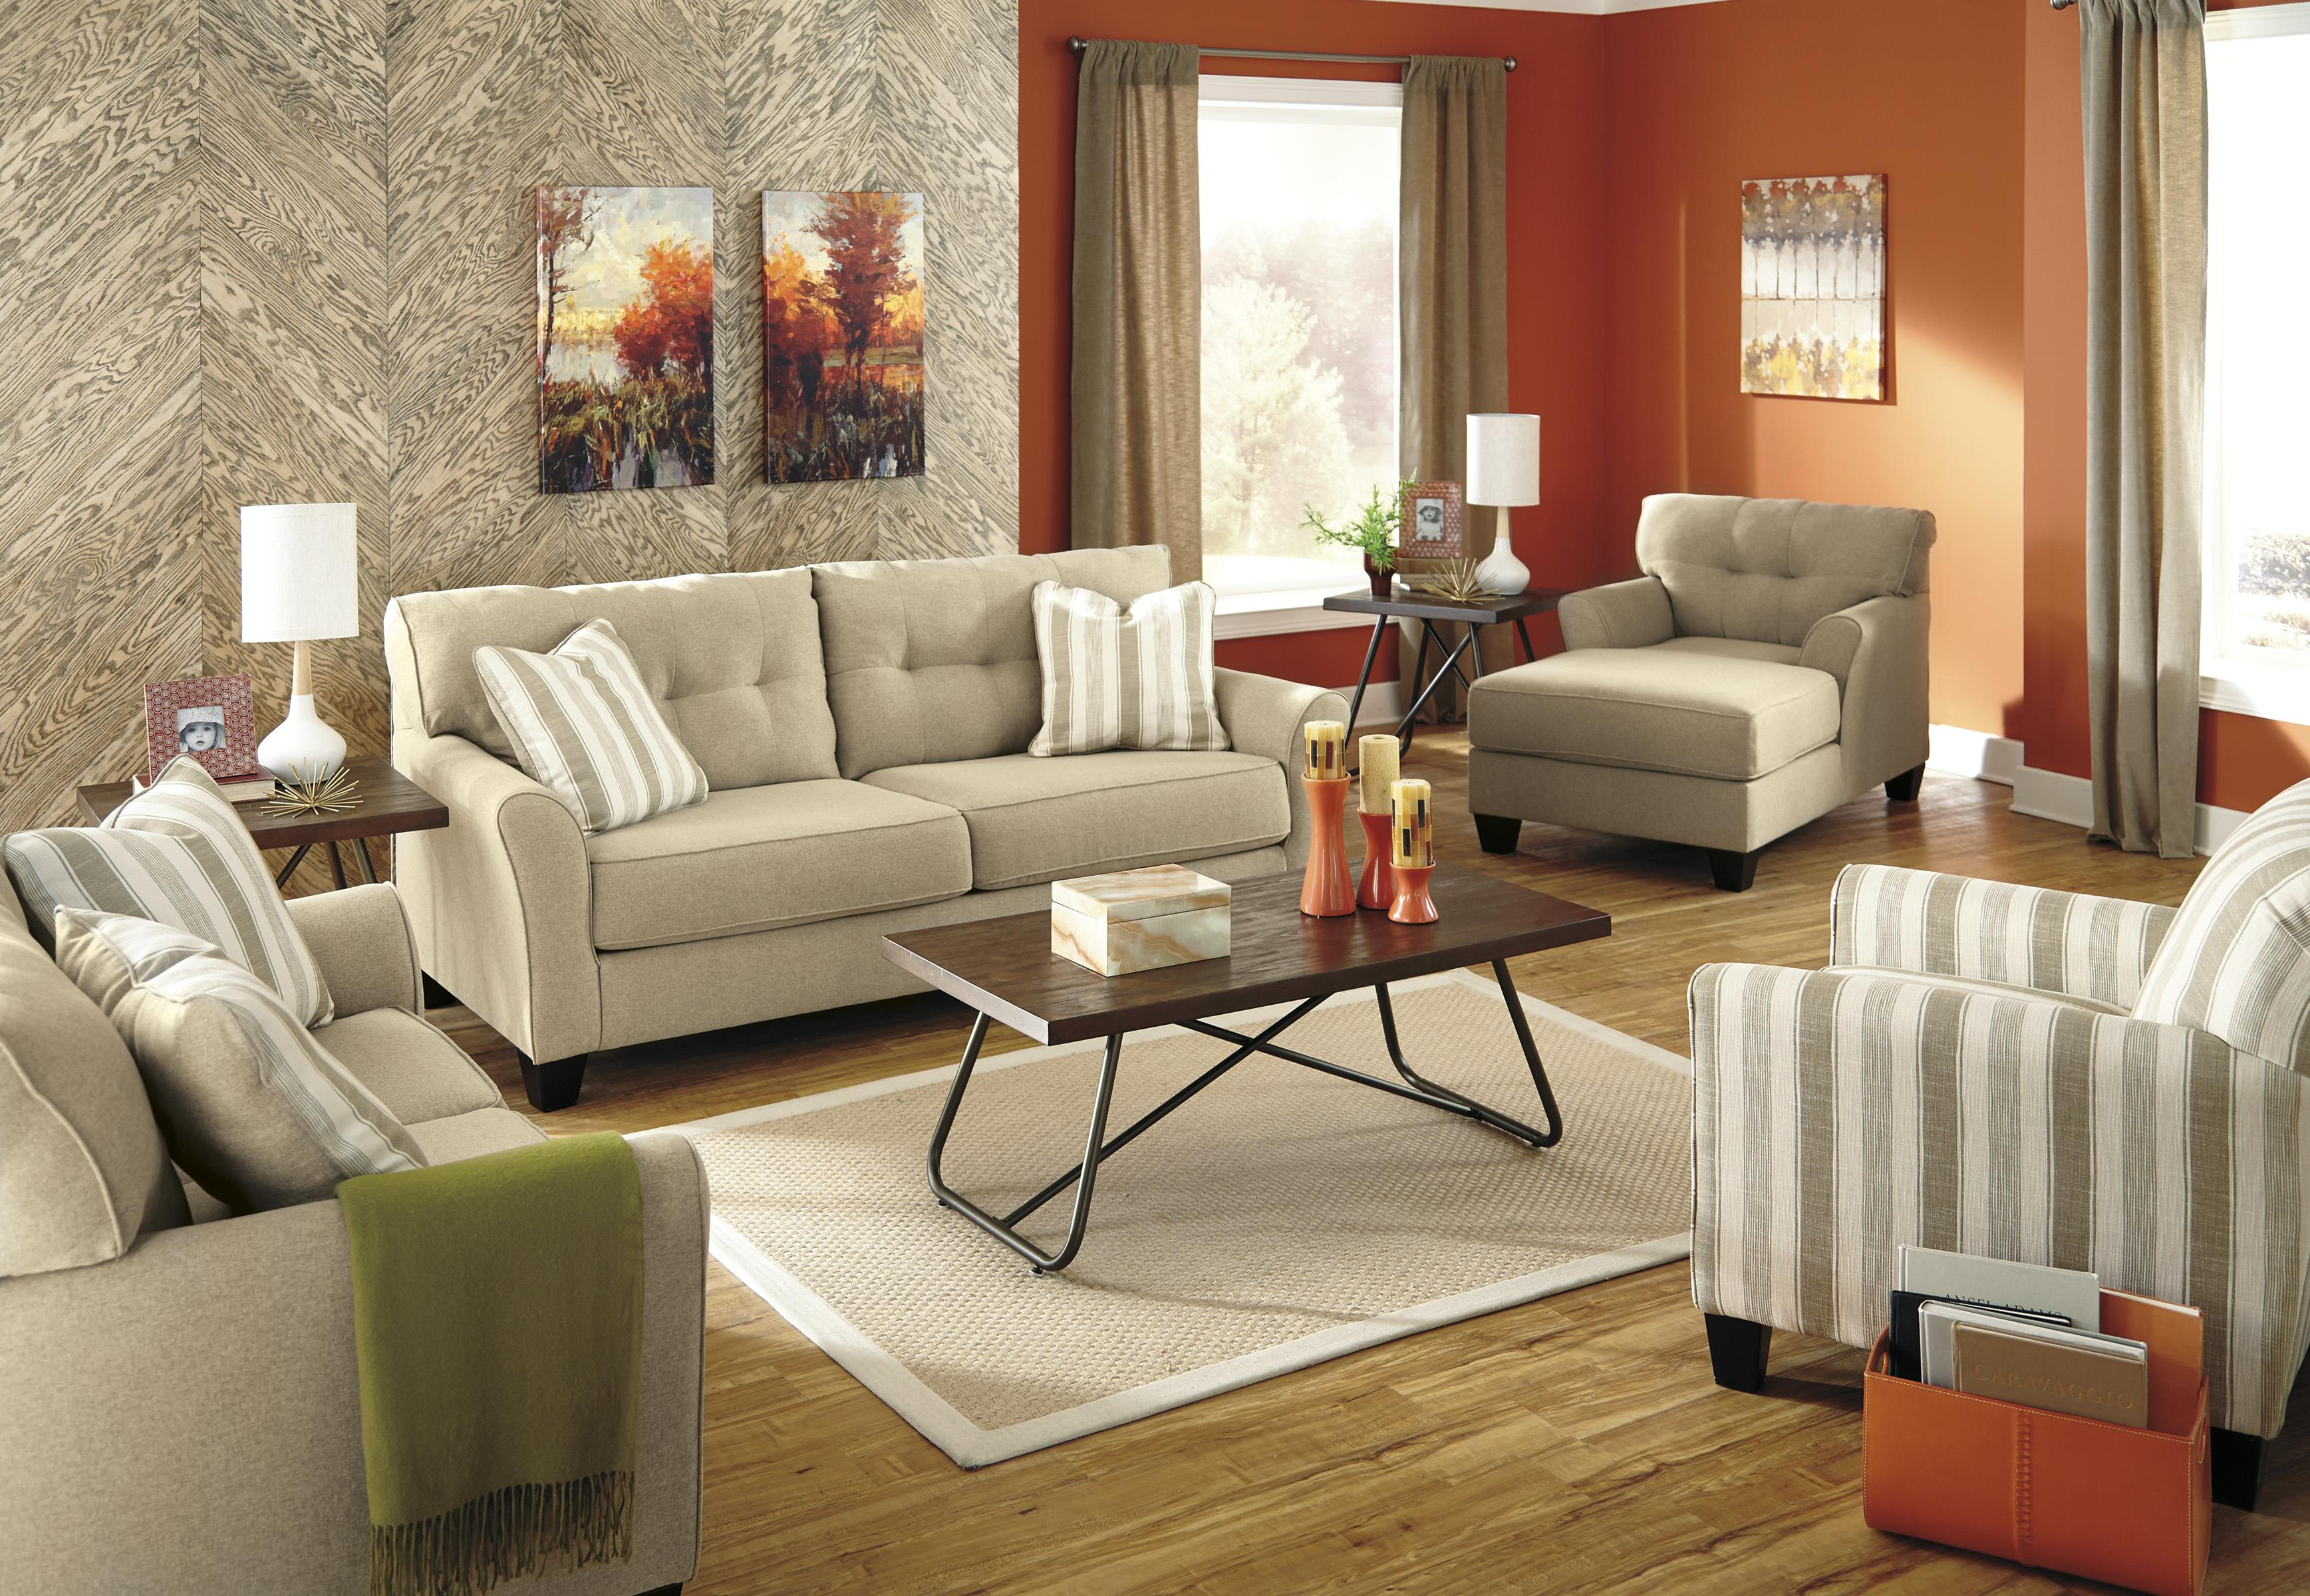 stores outlets used tx affordable dallas in area baby fine dfw furniture